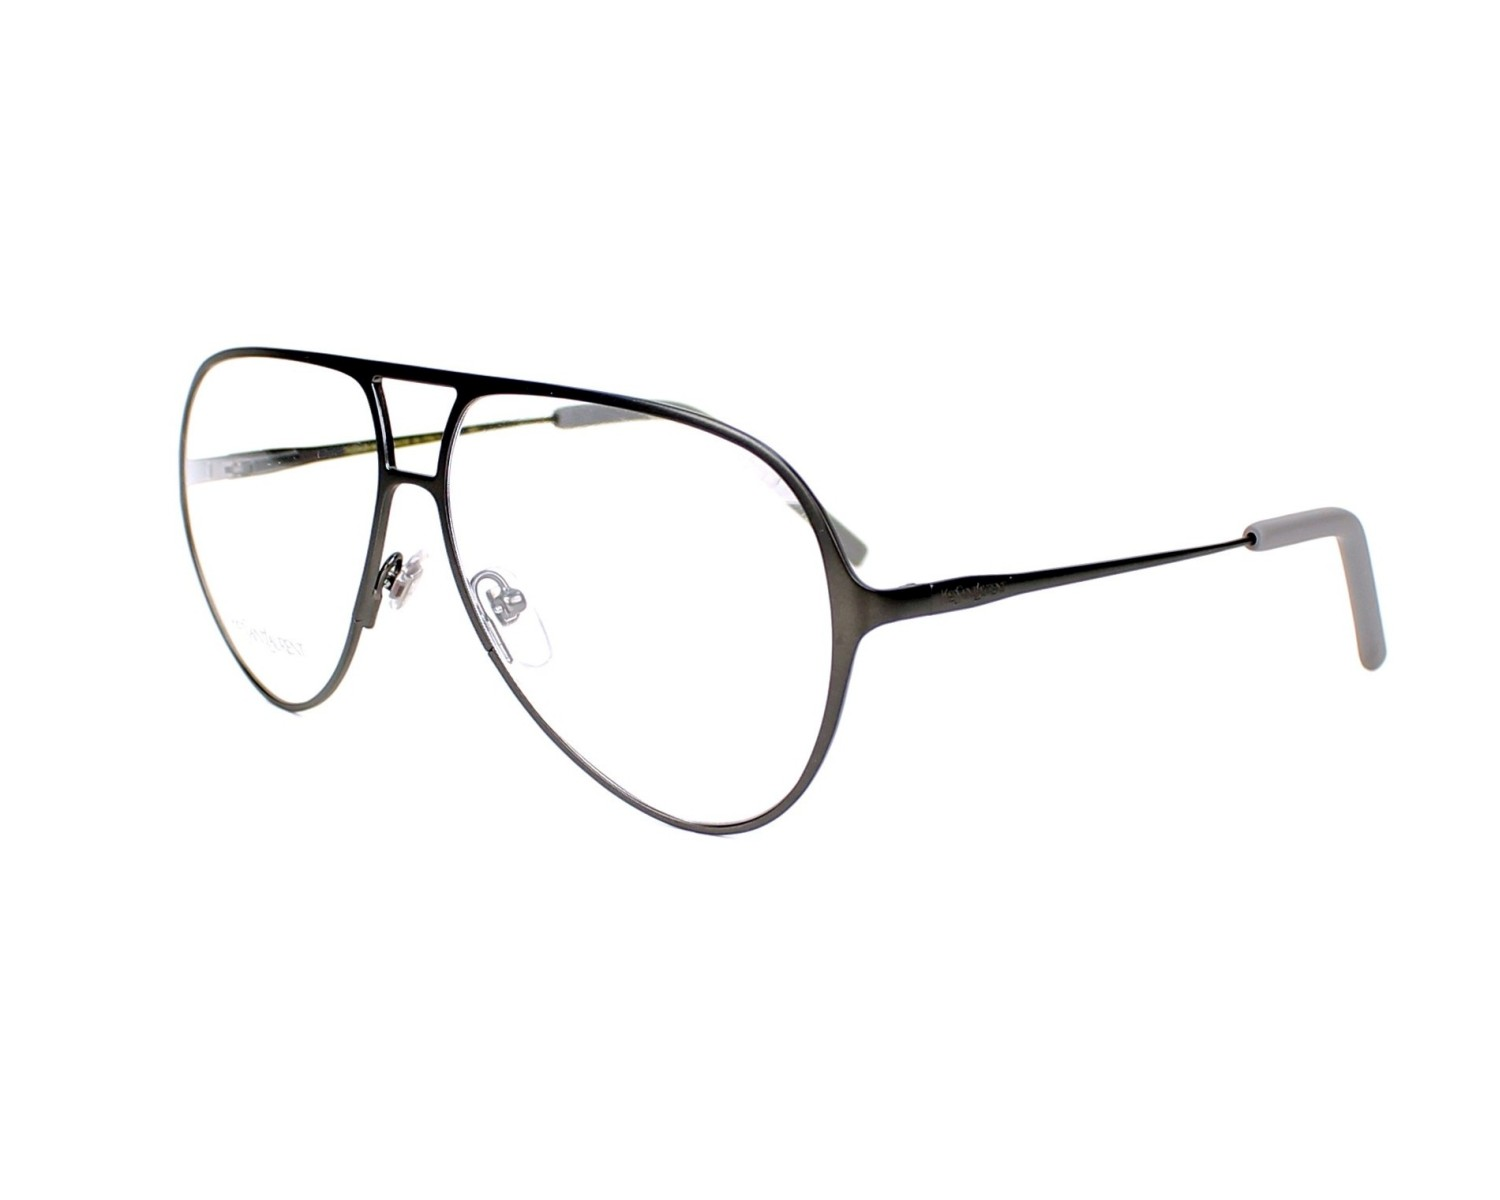 Yves saint laurent eyeglasses ysl 2325 cup grey visio for Miroir yves saint laurent